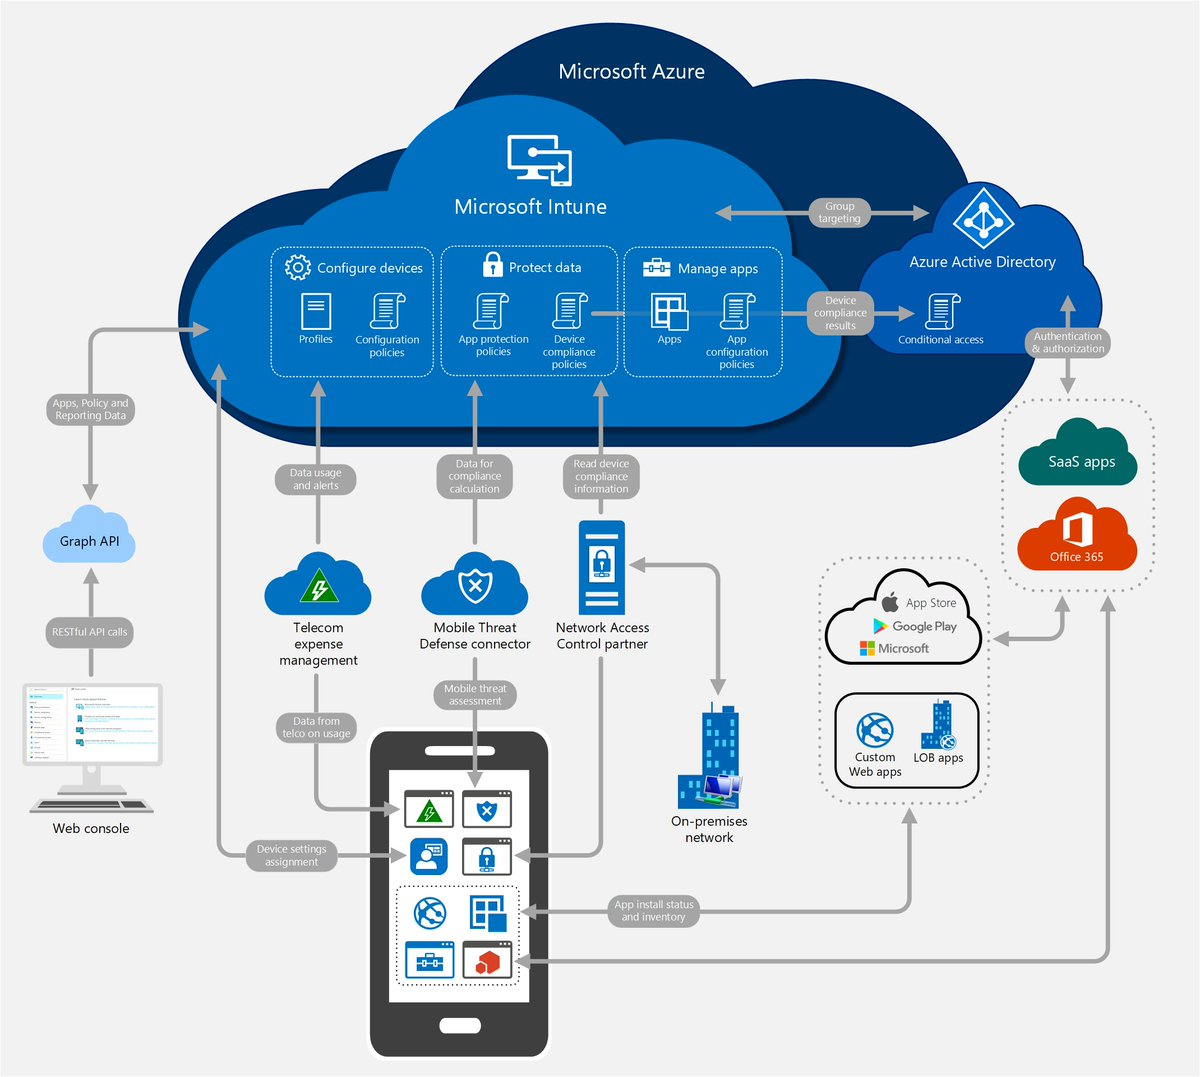 Aaron Parker On Twitter   U0026quot Ms Has An  Intune Architecture